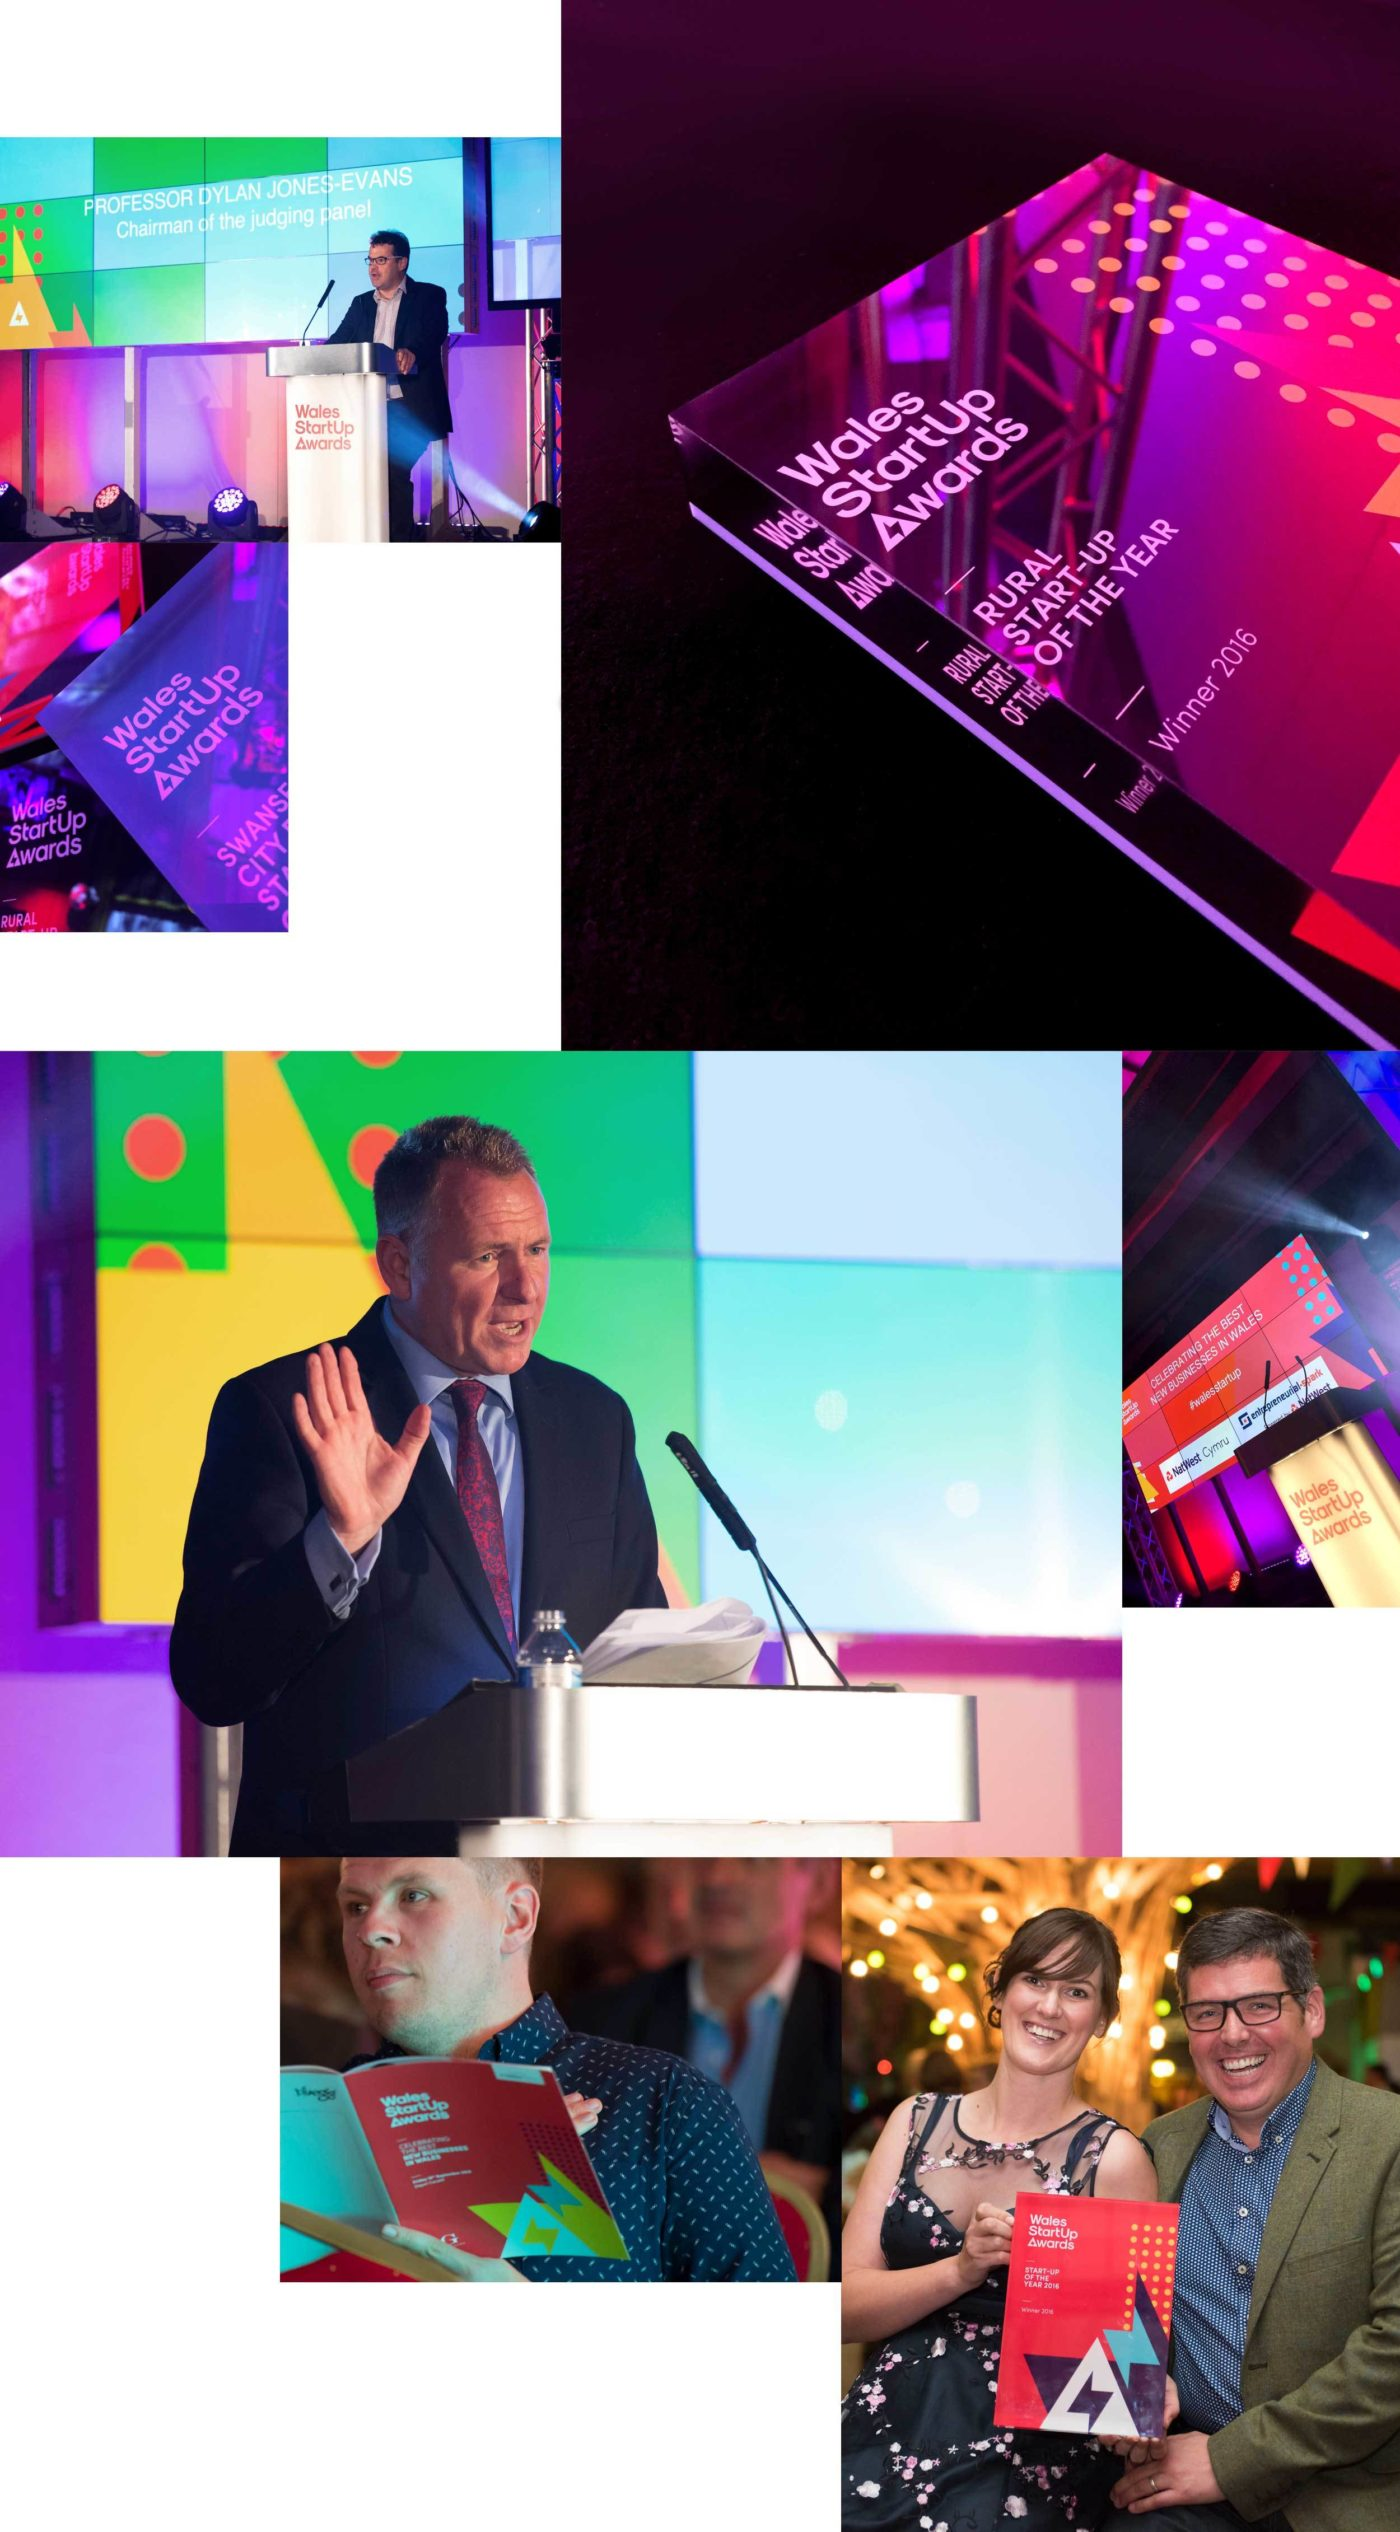 Images of the Wales StartUp Awards branding